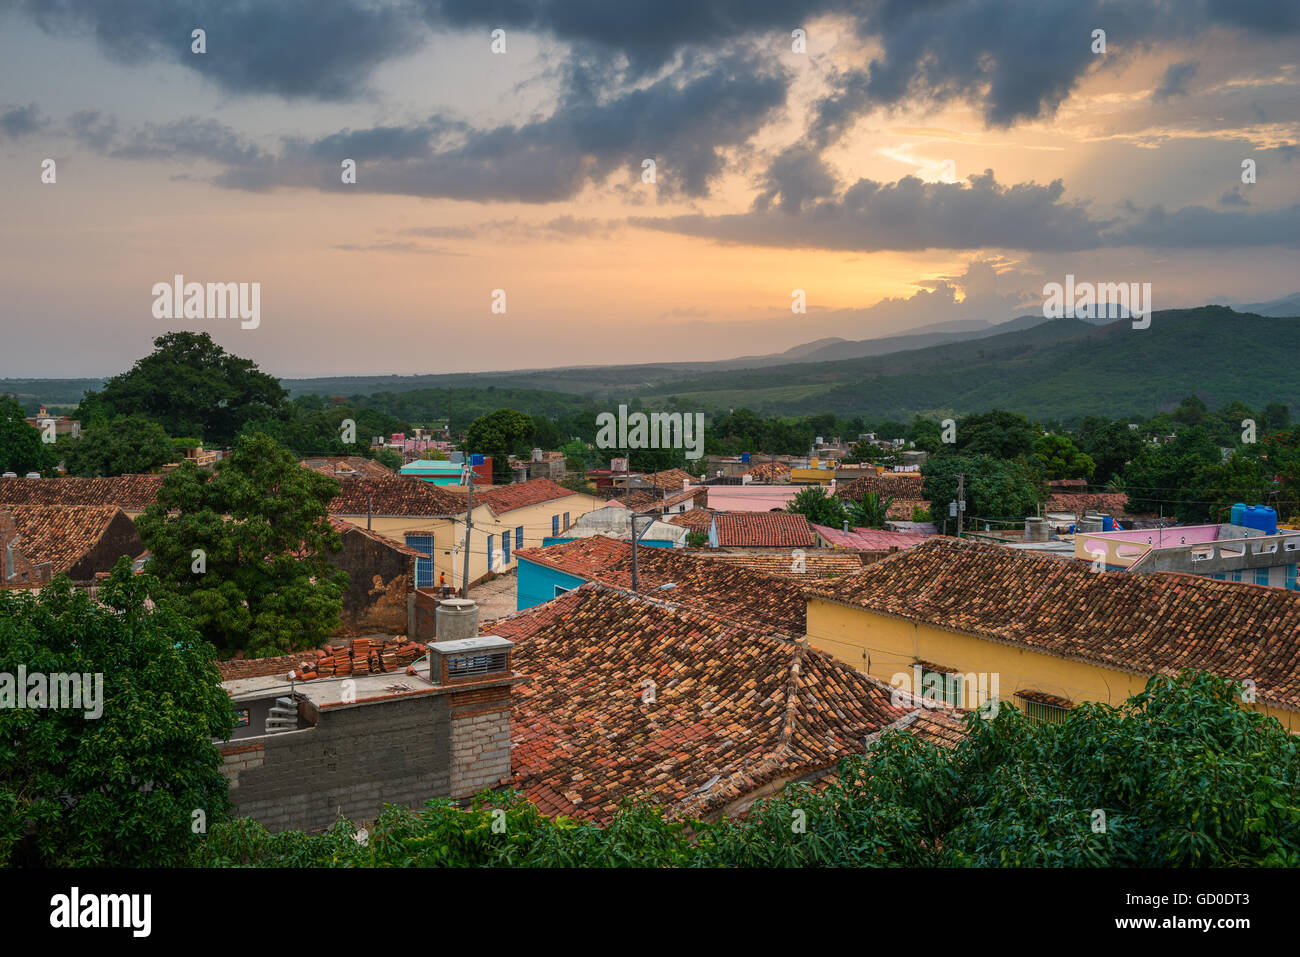 The sun sets over the rooftops of Trinidad, Cuba. - Stock Image